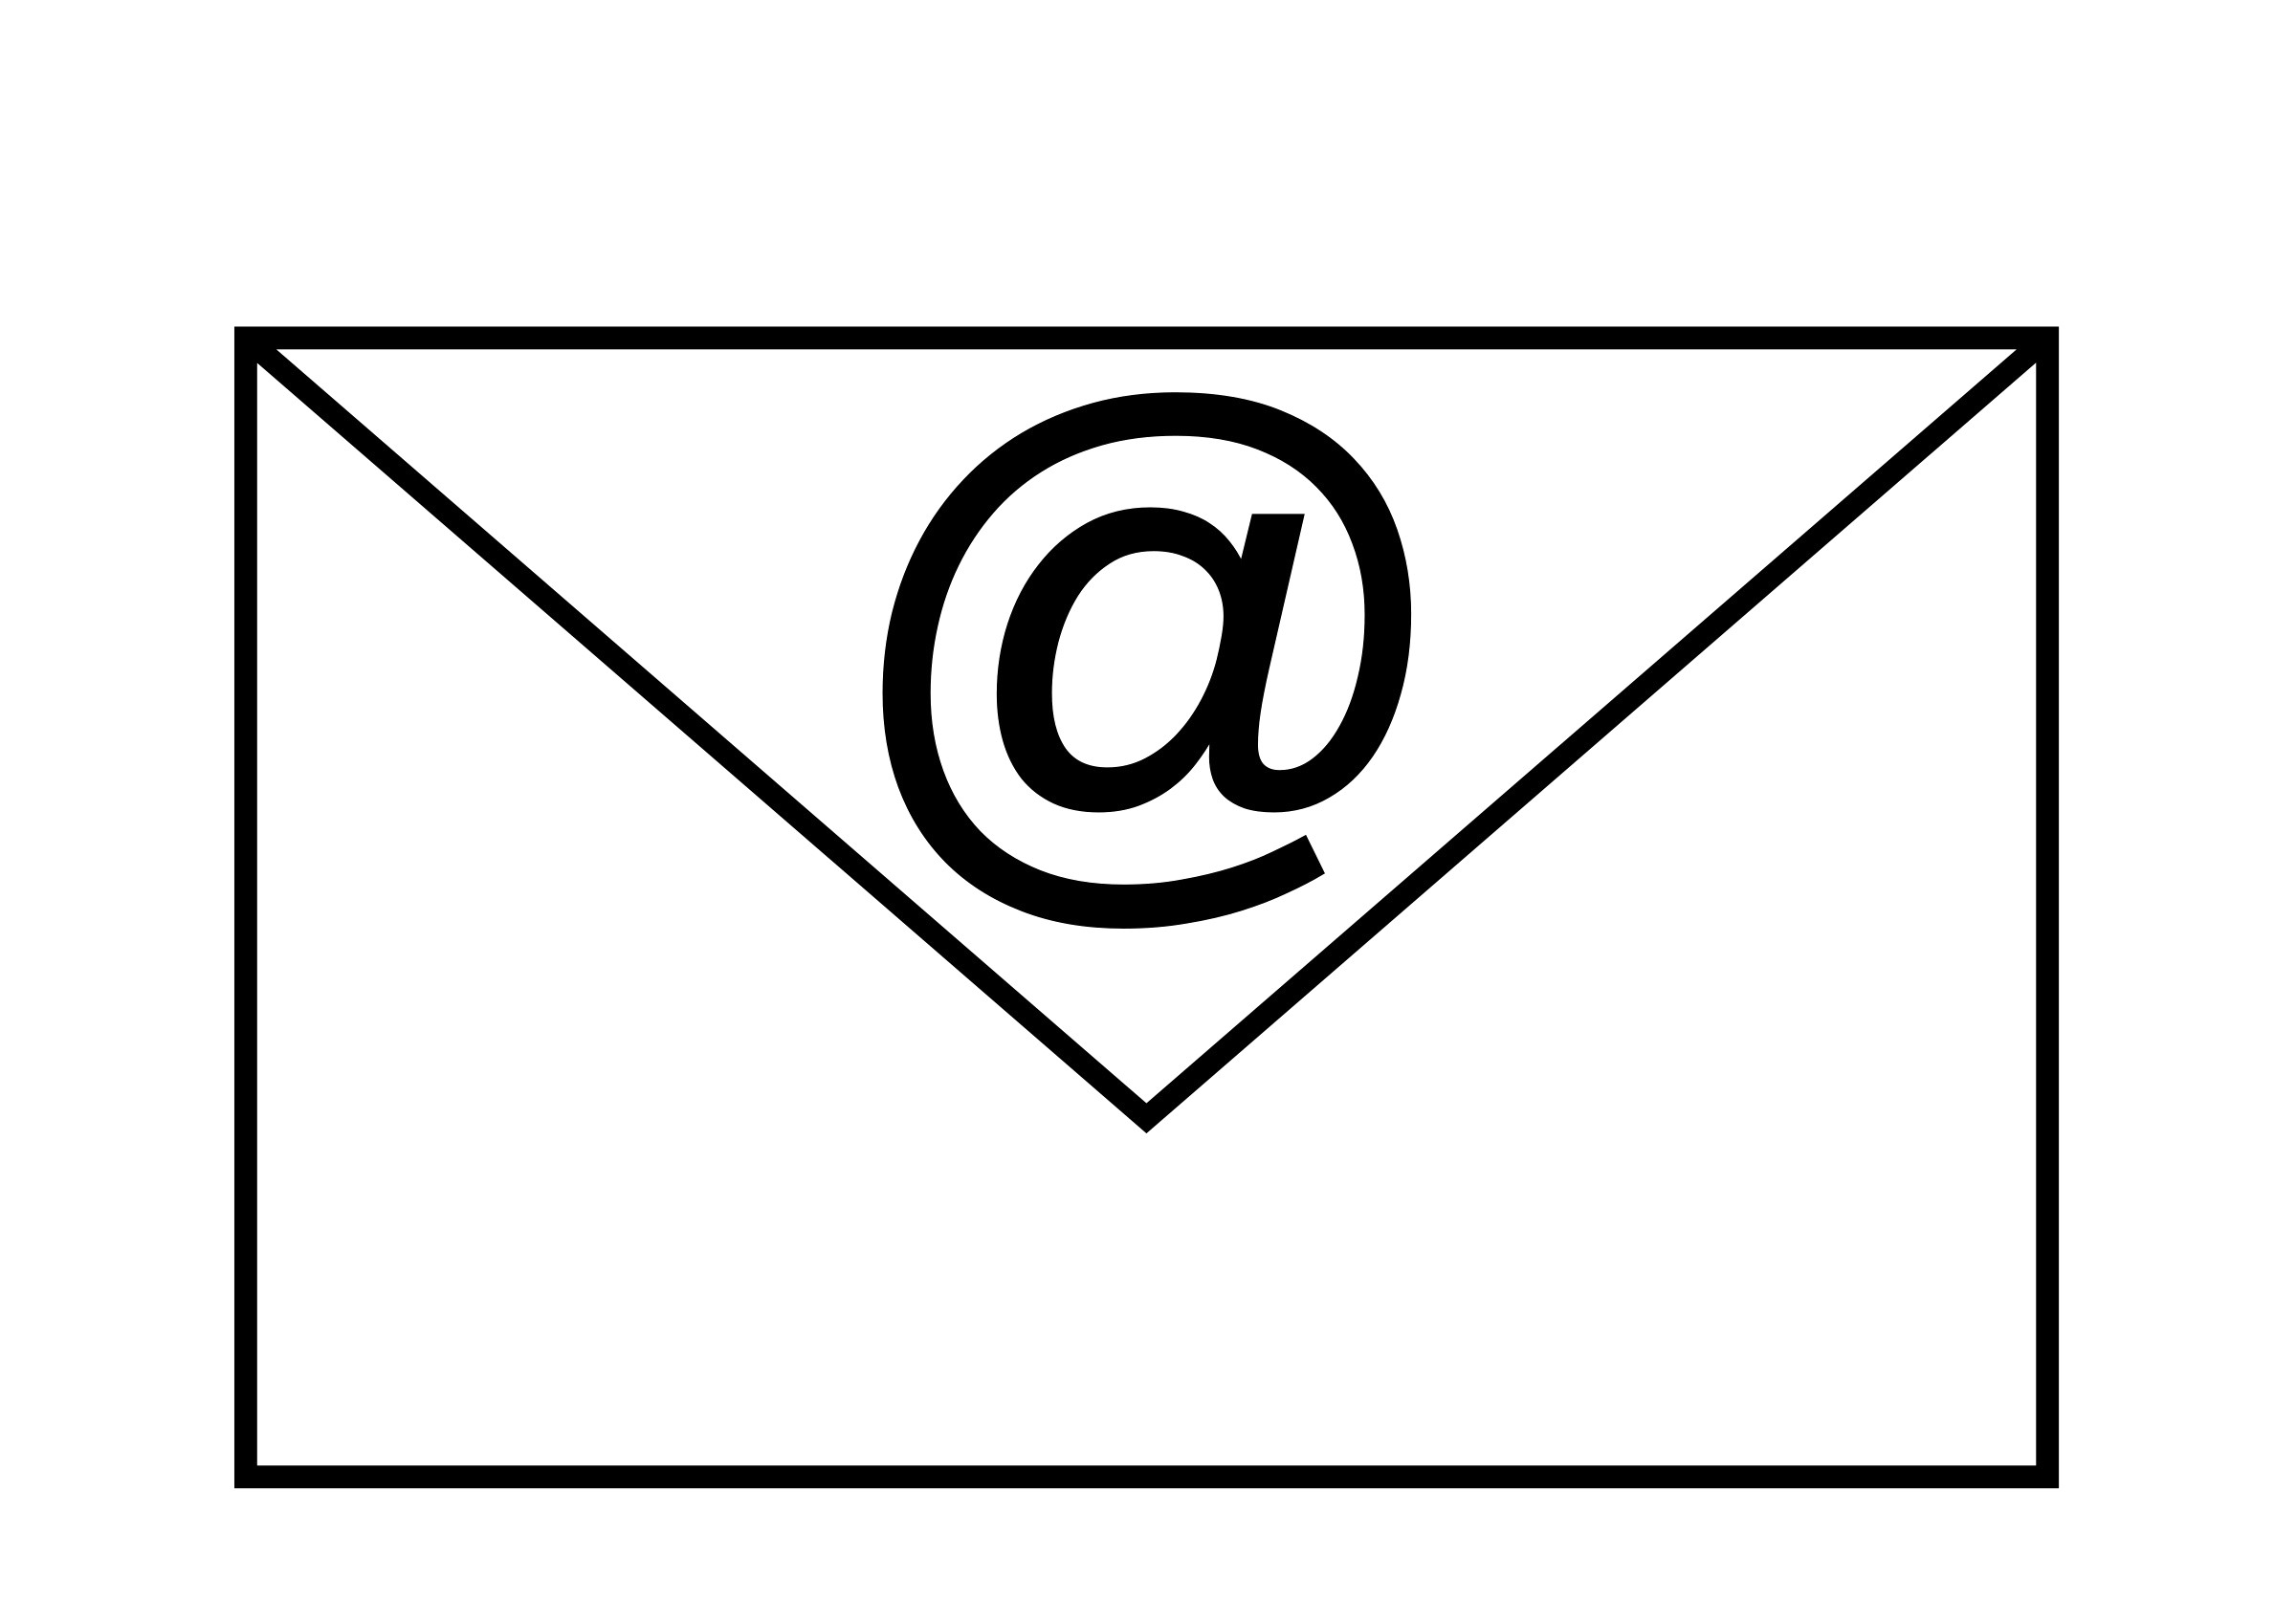 Email clipart black and white » Clipart Station.